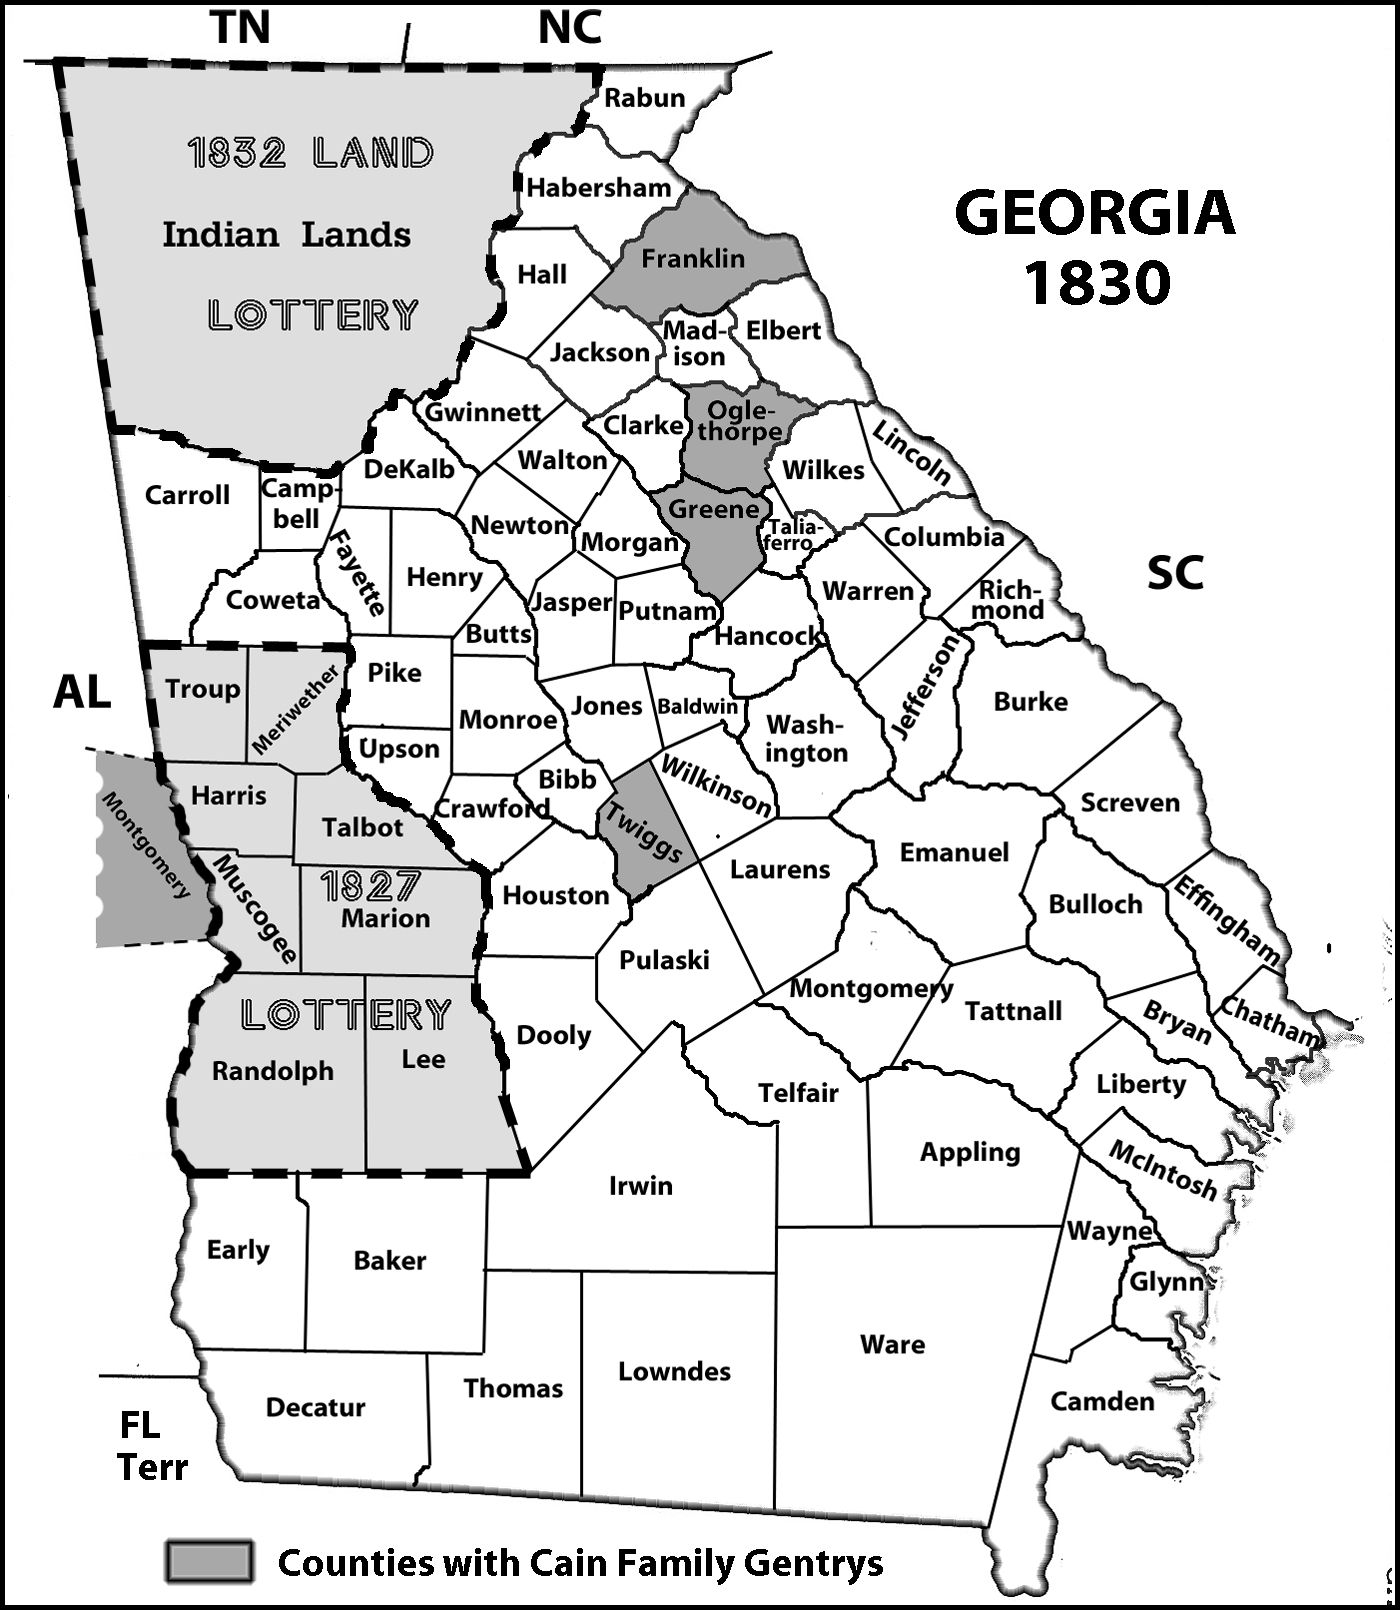 Georgia County Map With And Land Lottery Areas - County map of georgia